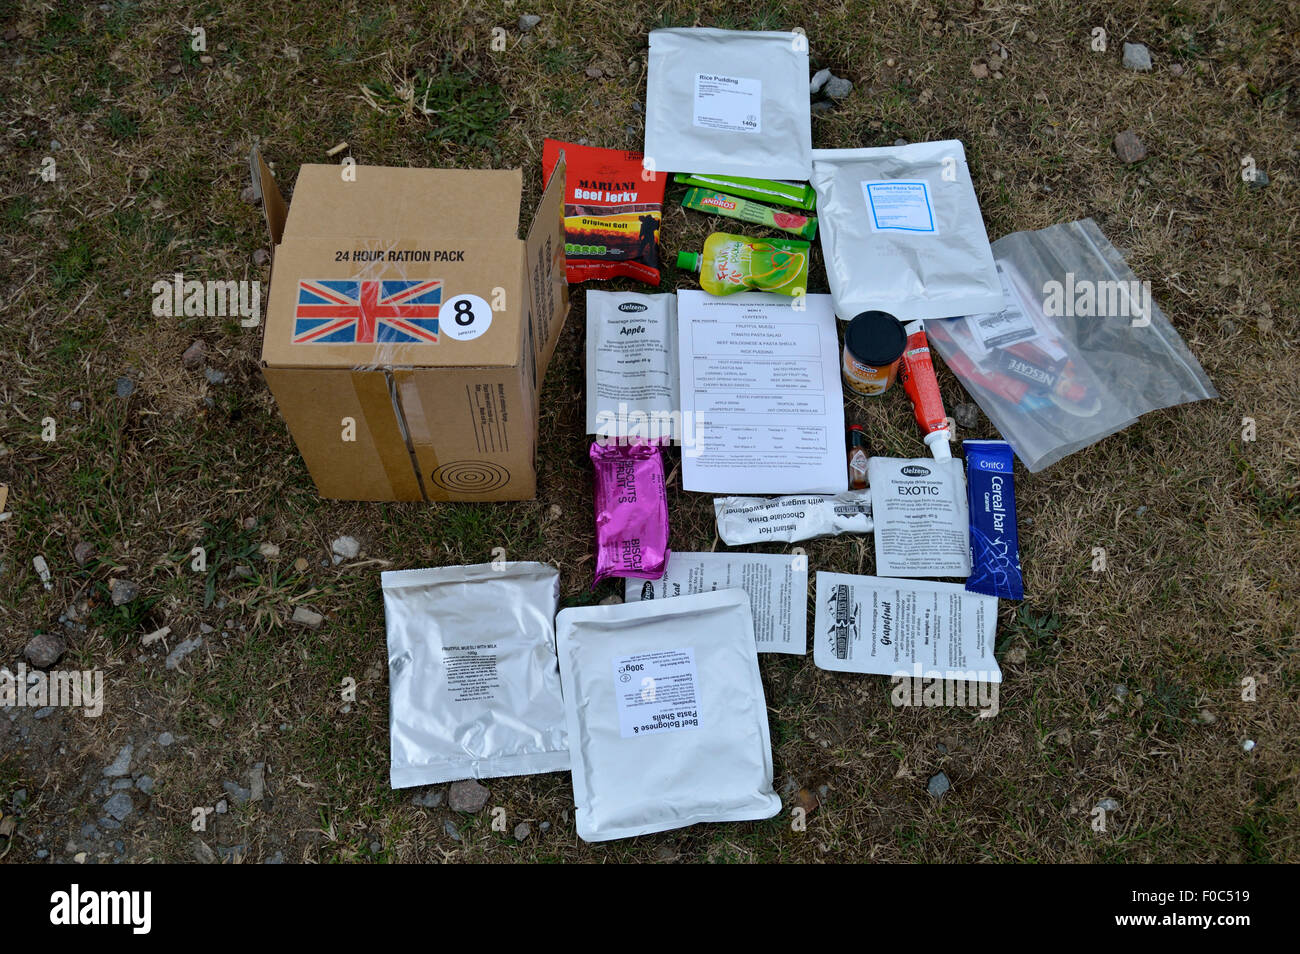 24 Hour ration pack contents with union Jack flag showing use of british army. - Stock Image